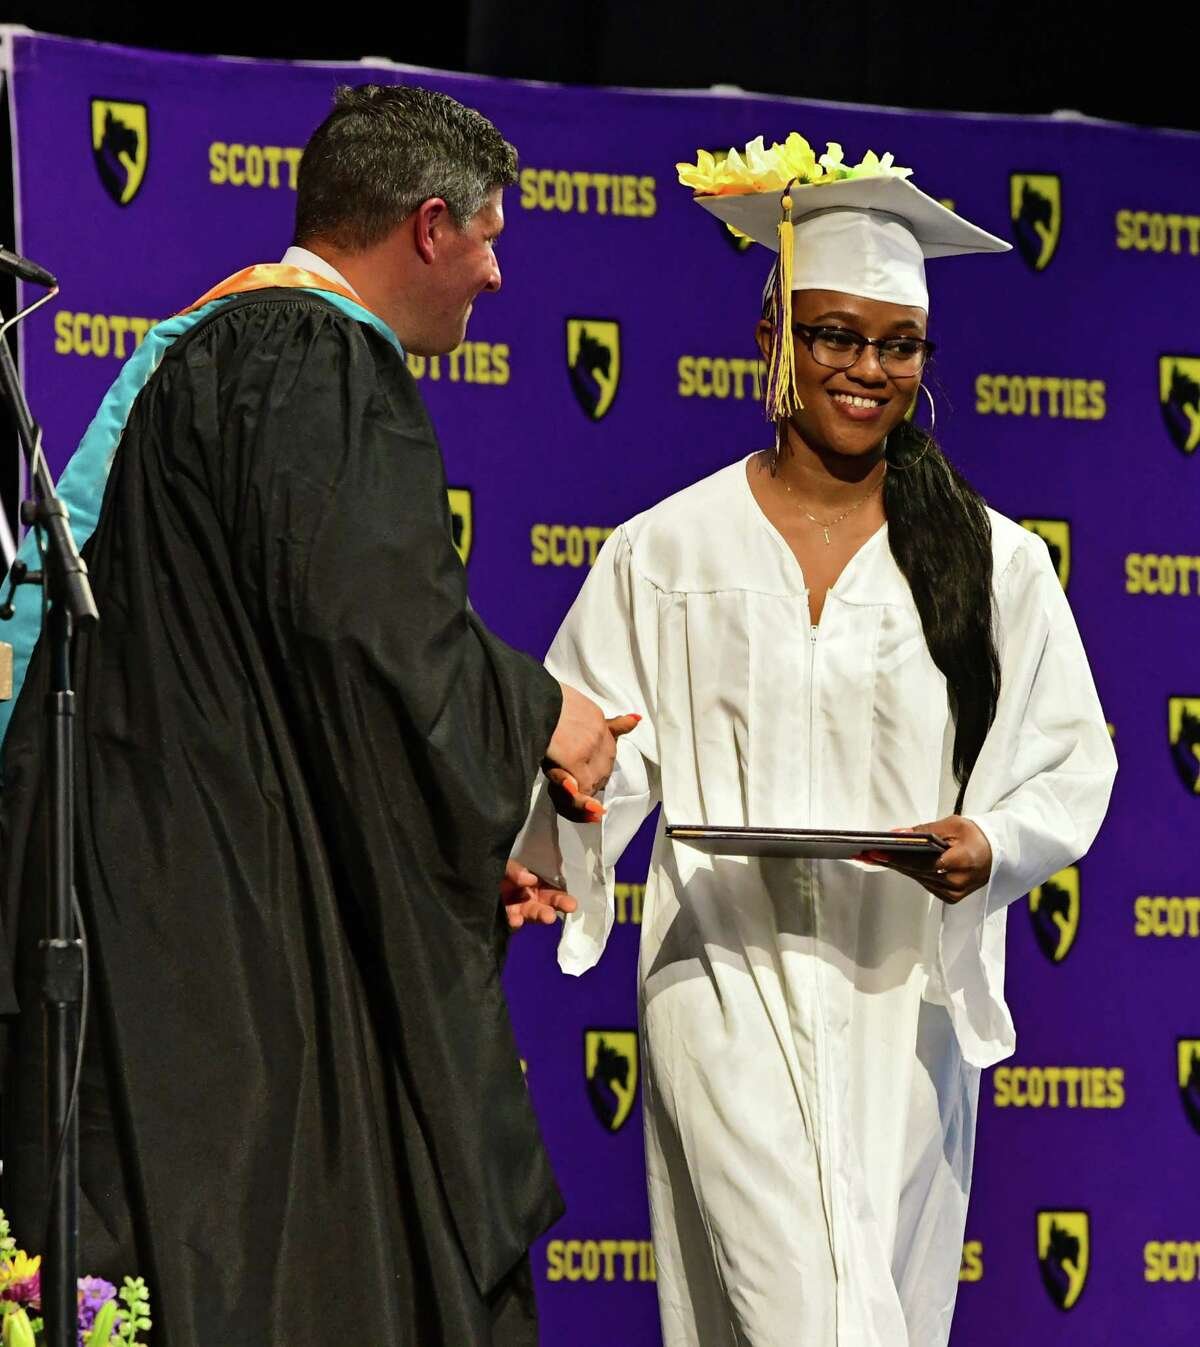 Tamara Myvette receives her diploma from Principal Gianleo Duca during the Ballston Spa High School graduation ceremony at Saratoga Performing Arts Center on Wednesday, June 26, 2019 in Saratoga Springs, N.Y. (Lori Van Buren/Times Union)